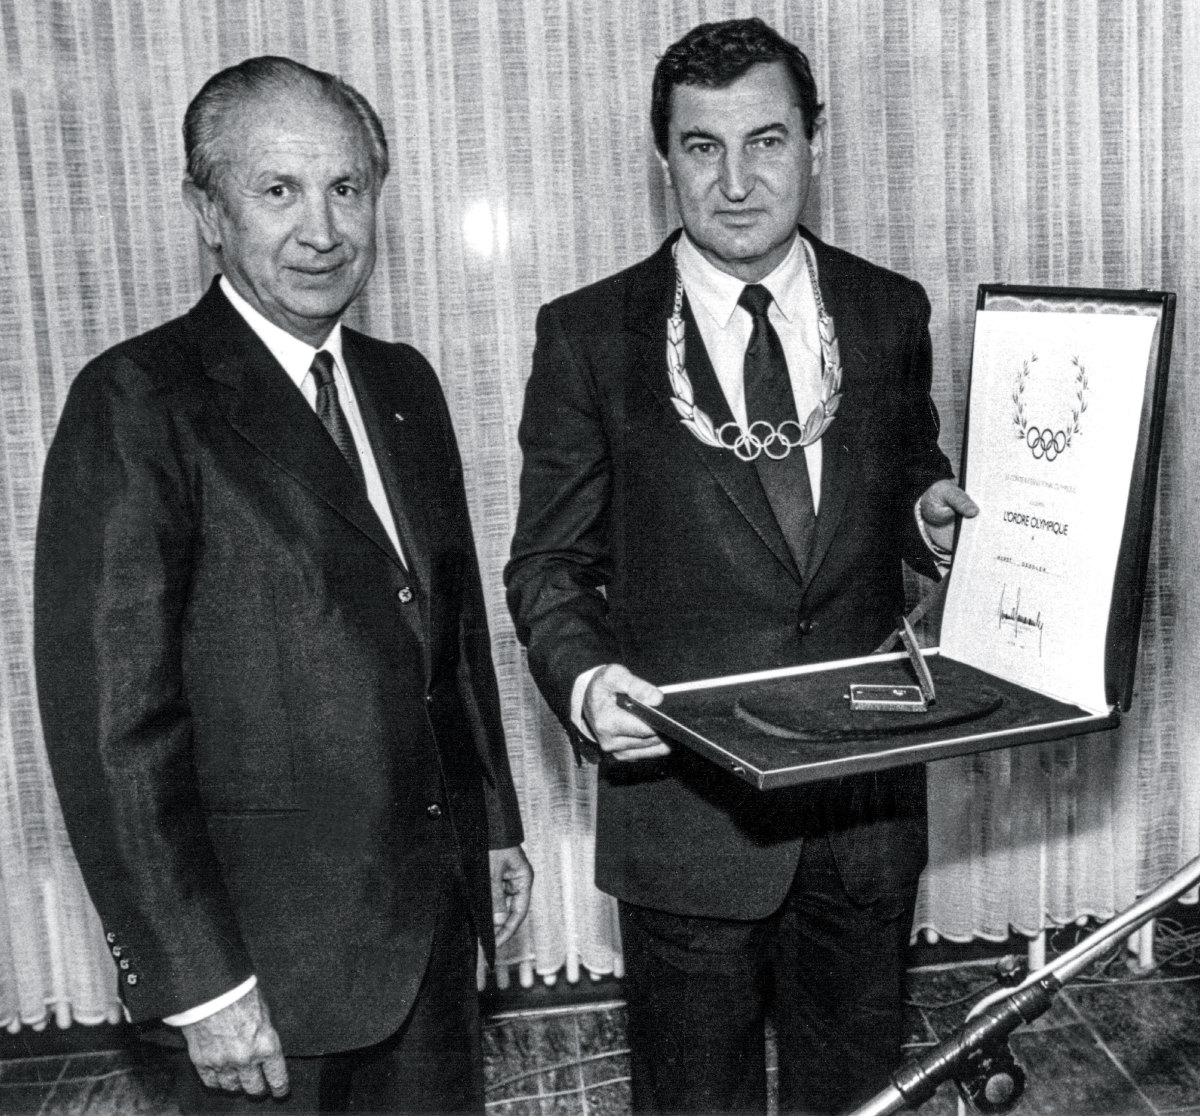 Horst Dassler (right) receives the Olympic Order from IOC president Juan Antonio Samaranch (left)in 1984. (Riethausen/picture alliance/Getty Images)